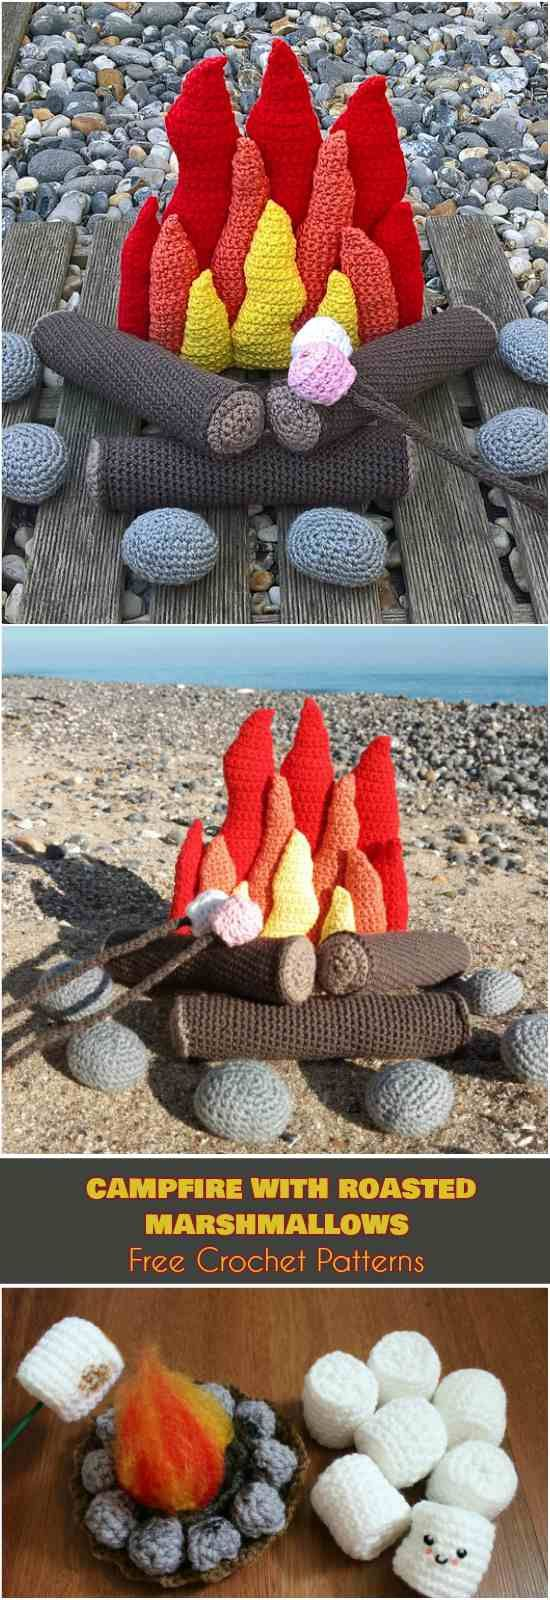 Campfire with Roasted Marshmallows [Free Crochet Patterns] Amigurumi , Home Decor Crochet Patterns